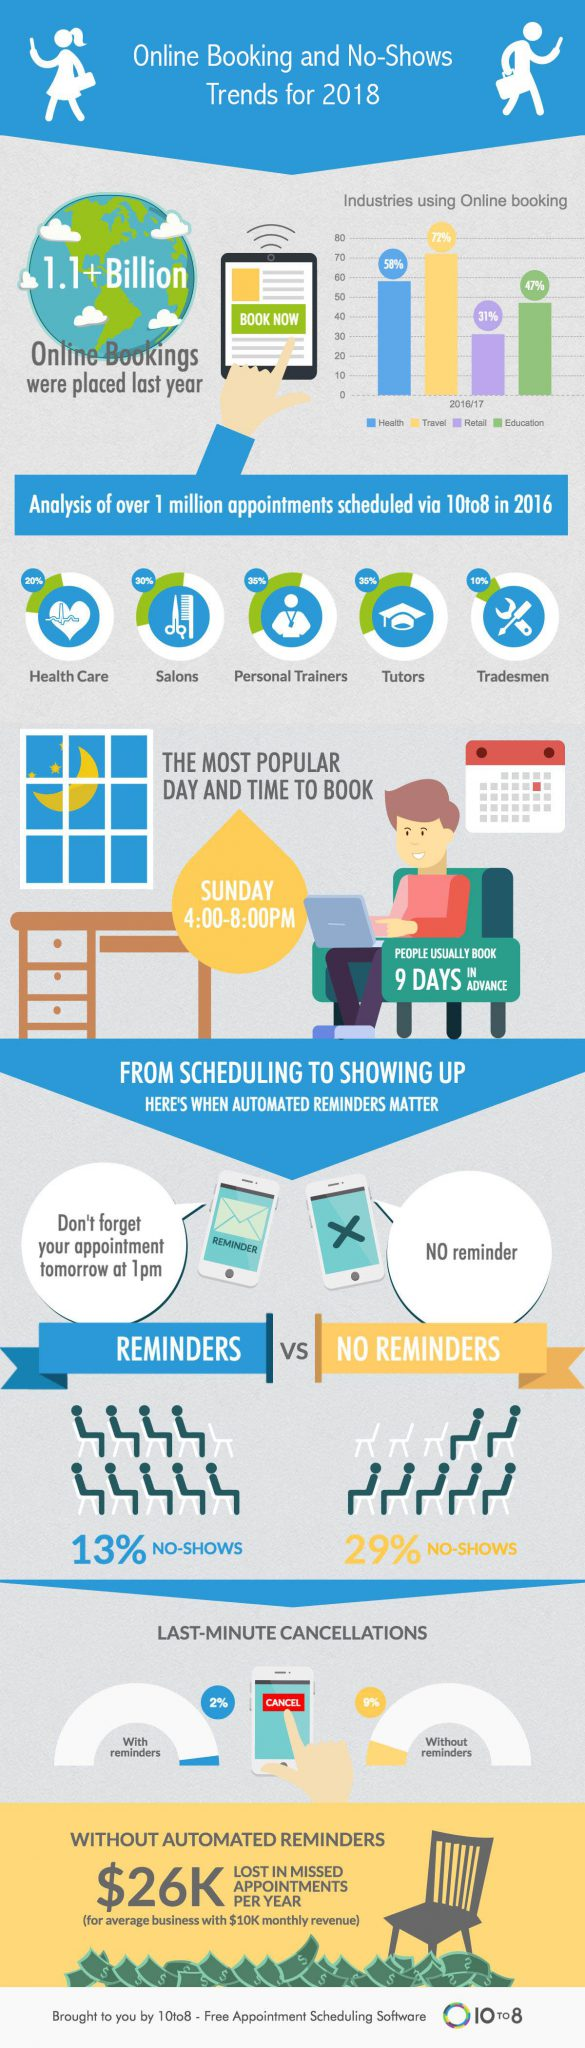 Online booking trends for 2018